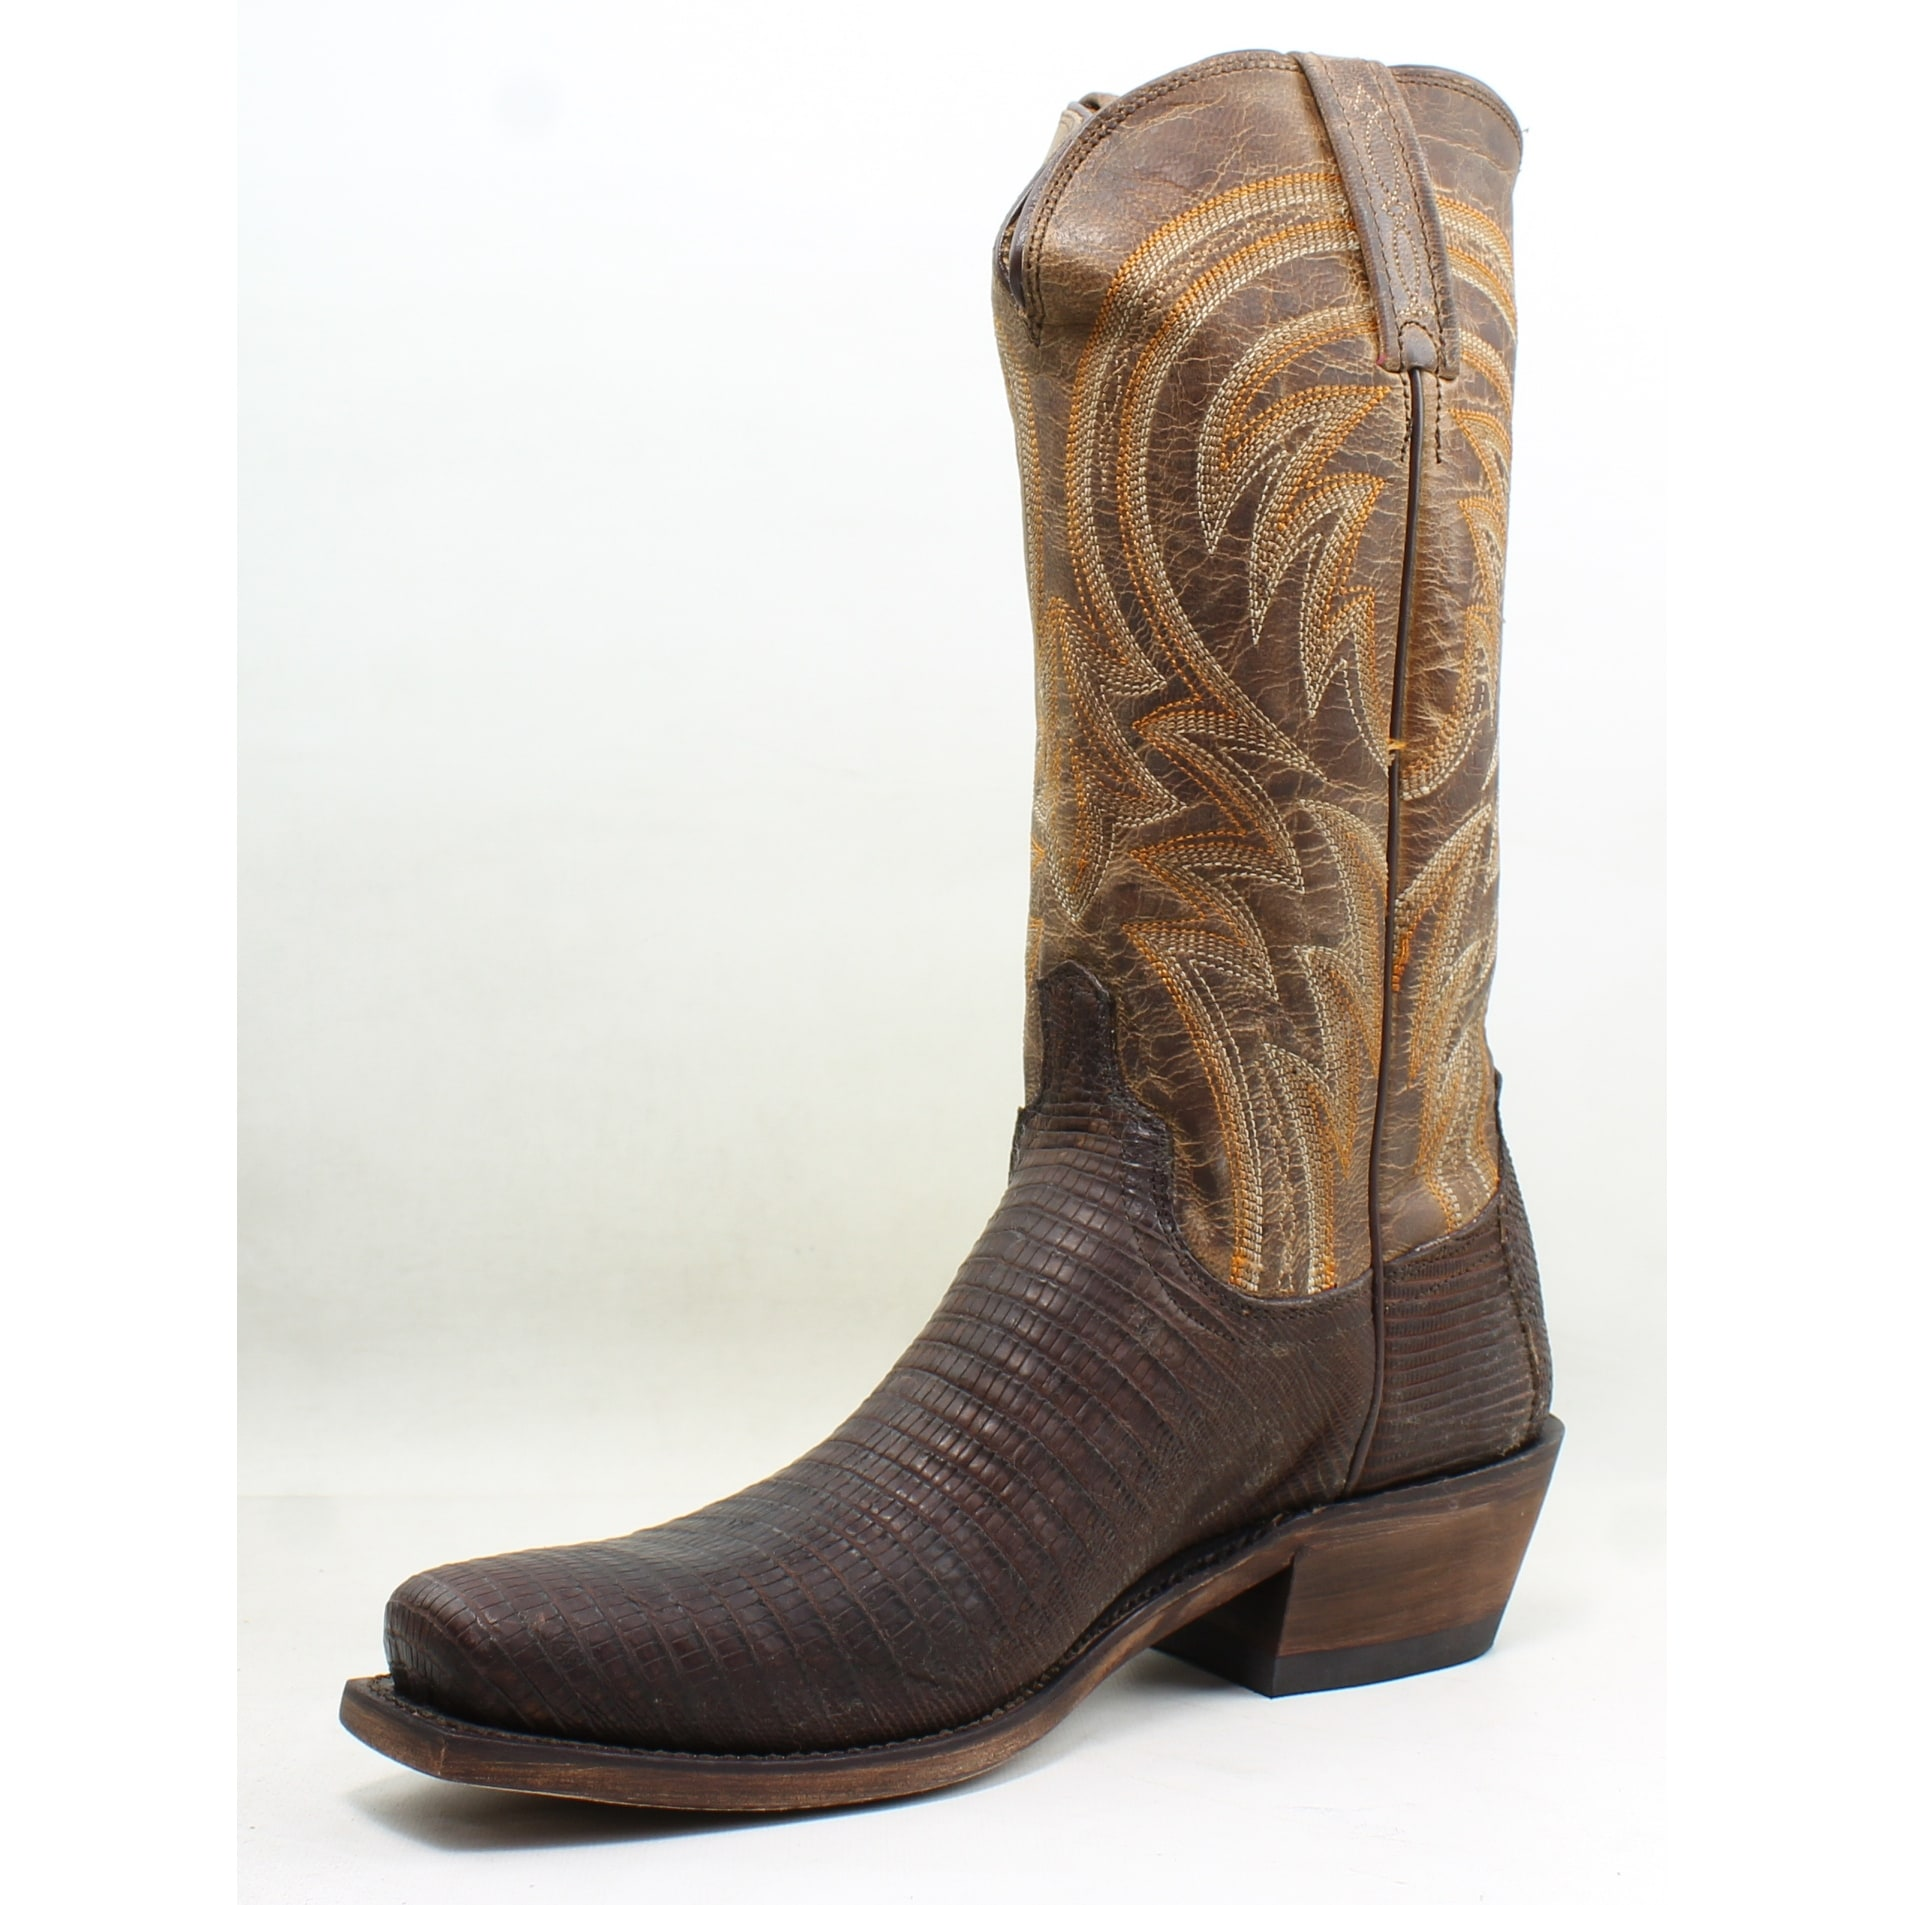 0fe6630772b Lucchese Mens M2904.74 Tan Cowboy, Western Boots Size 8.5